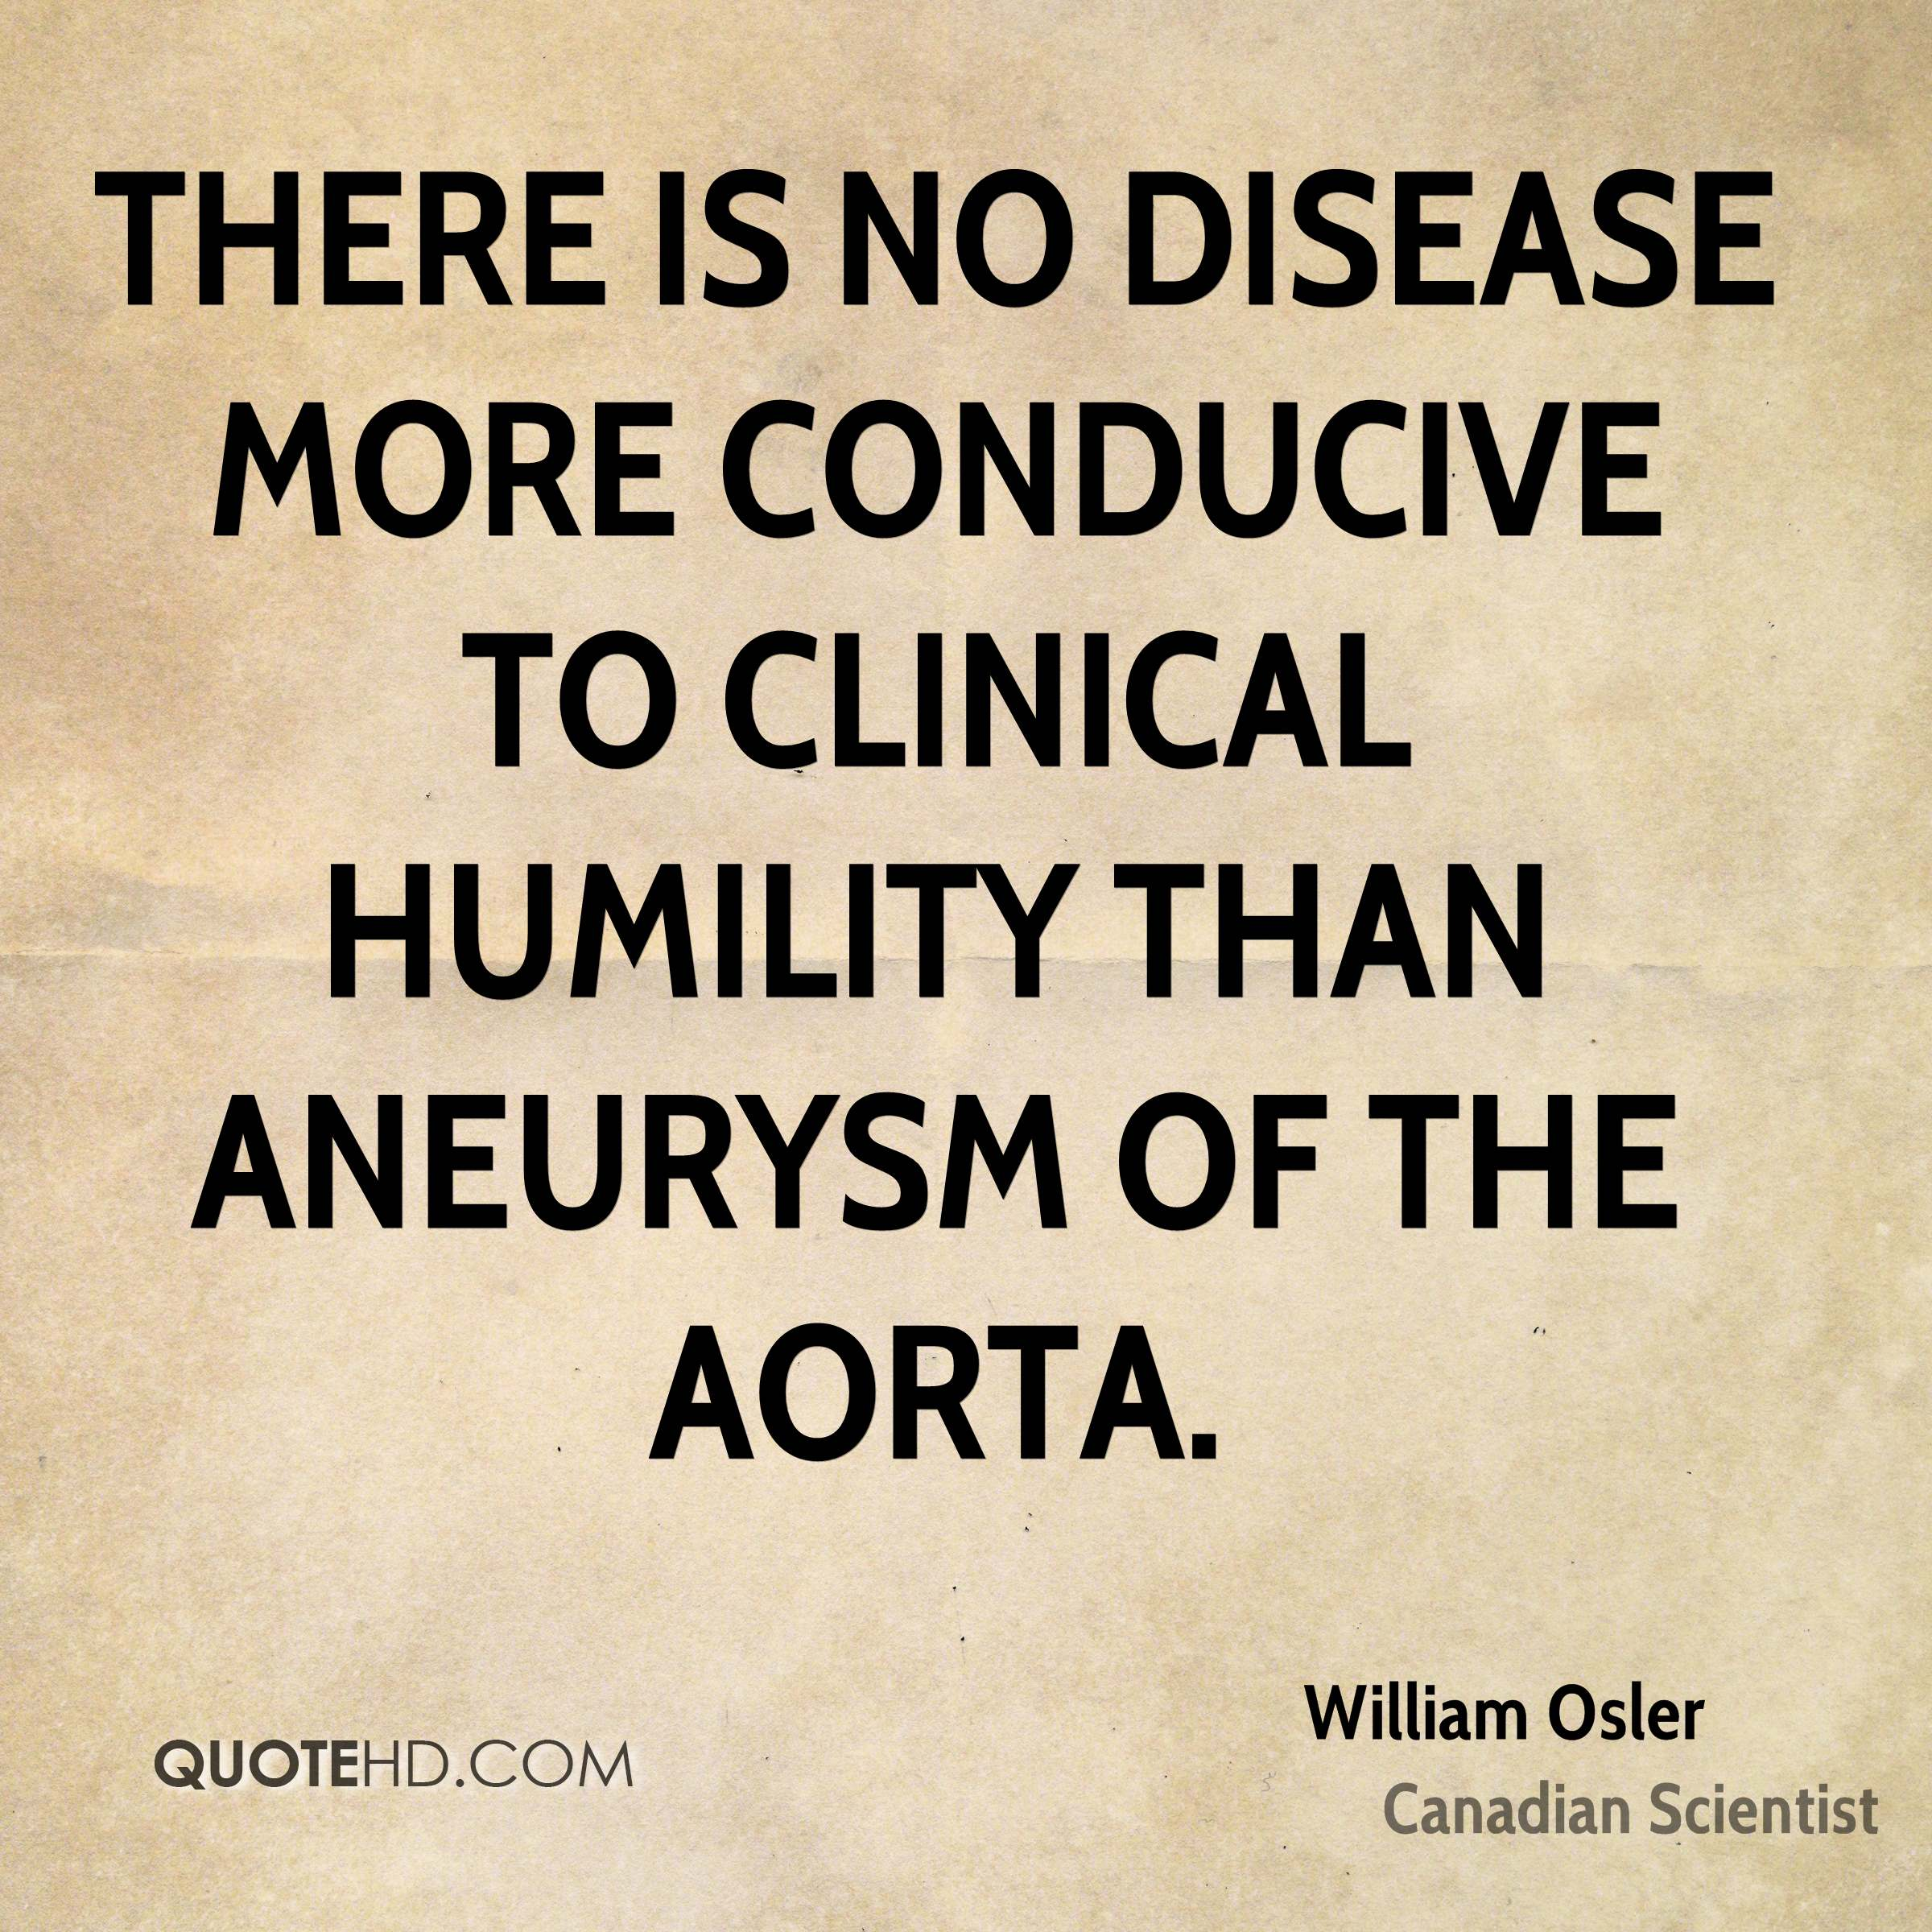 There is no disease more conducive to clinical humility than aneurysm of the aorta.